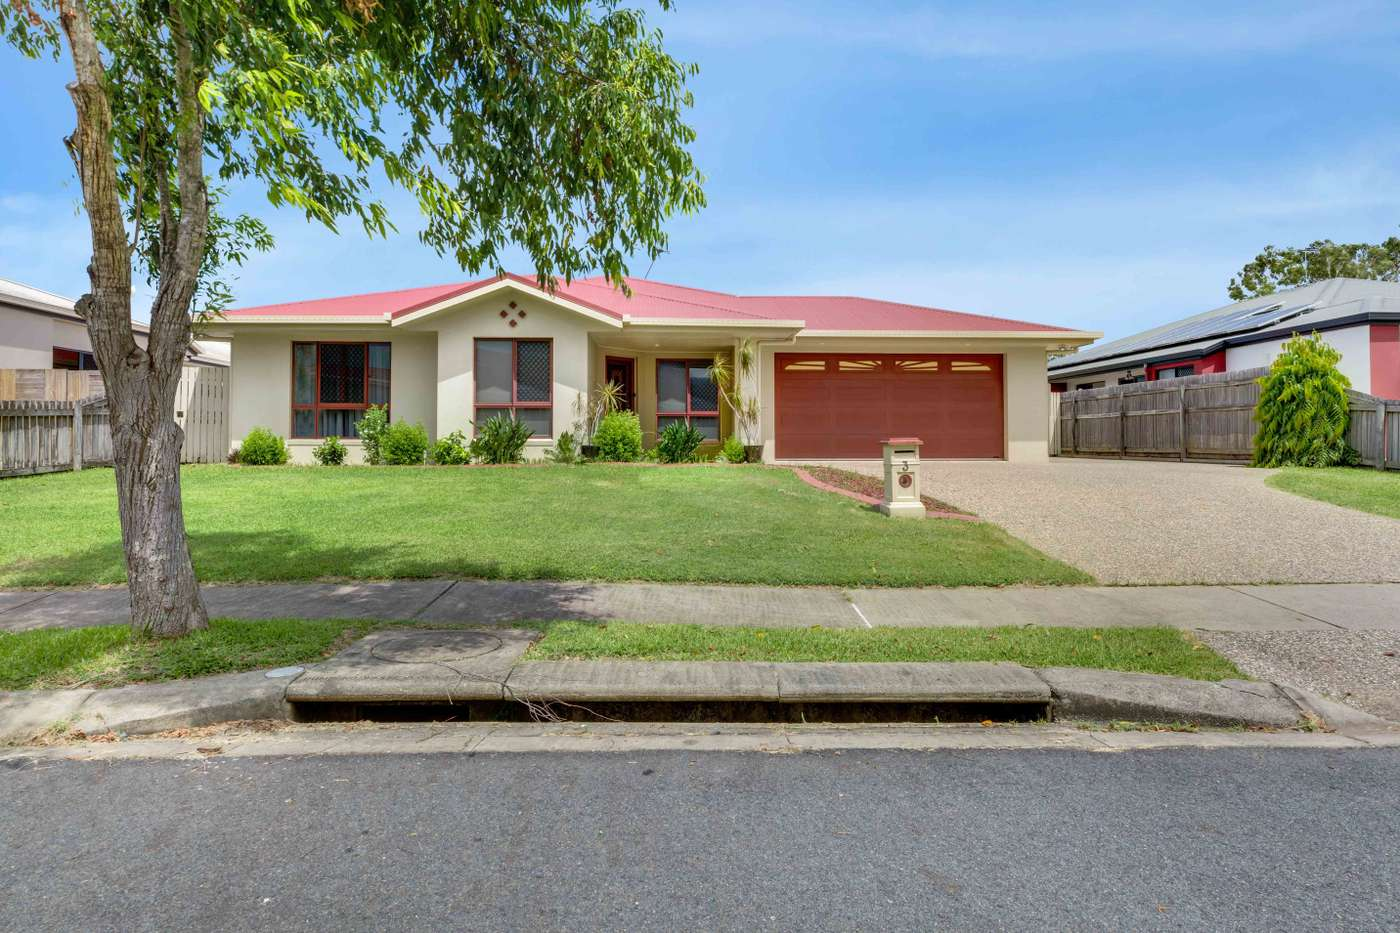 Main view of Homely house listing, 3 Joseph Court, Glenella, QLD 4740